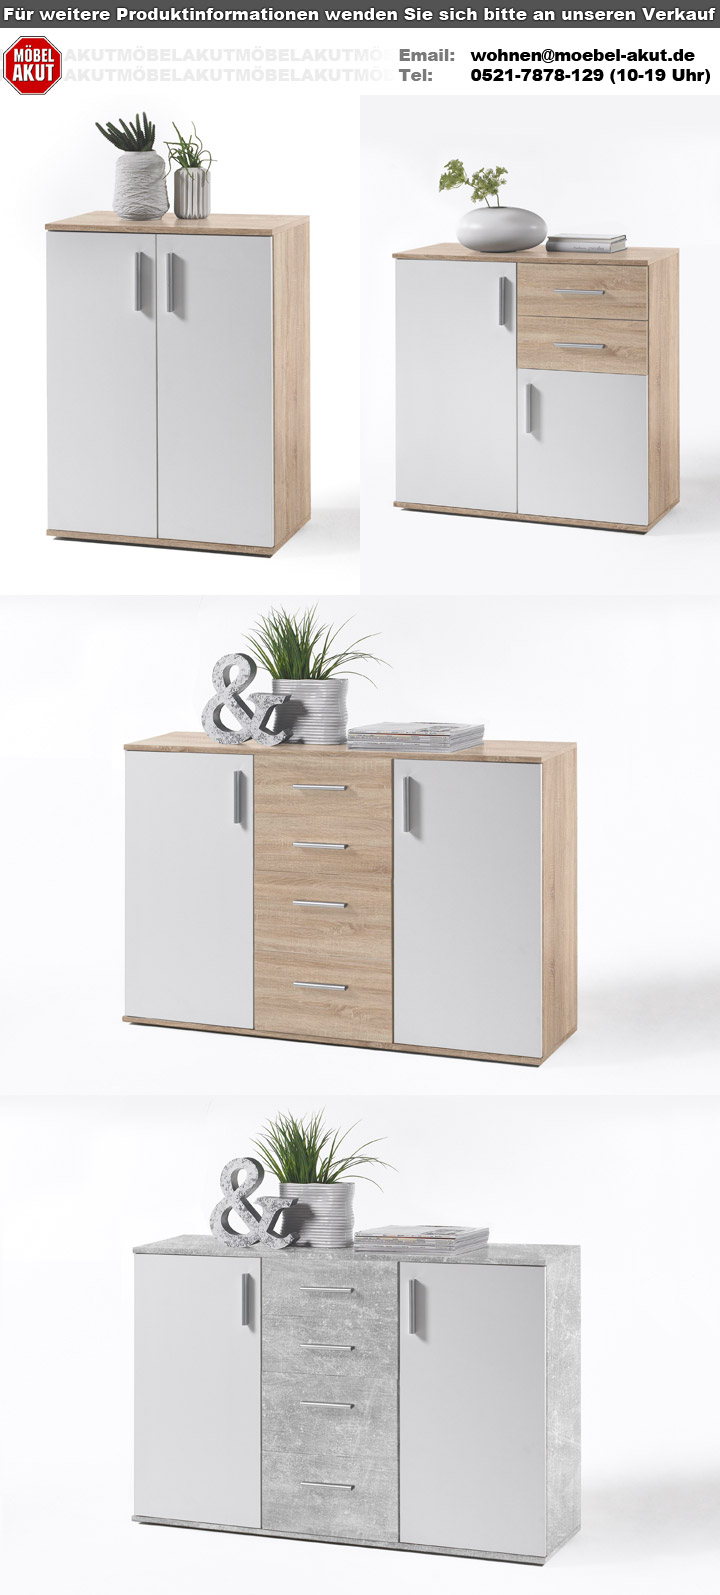 kommode bobby 5 sideboard wohnzimmerschrank sonoma eiche und wei ebay. Black Bedroom Furniture Sets. Home Design Ideas